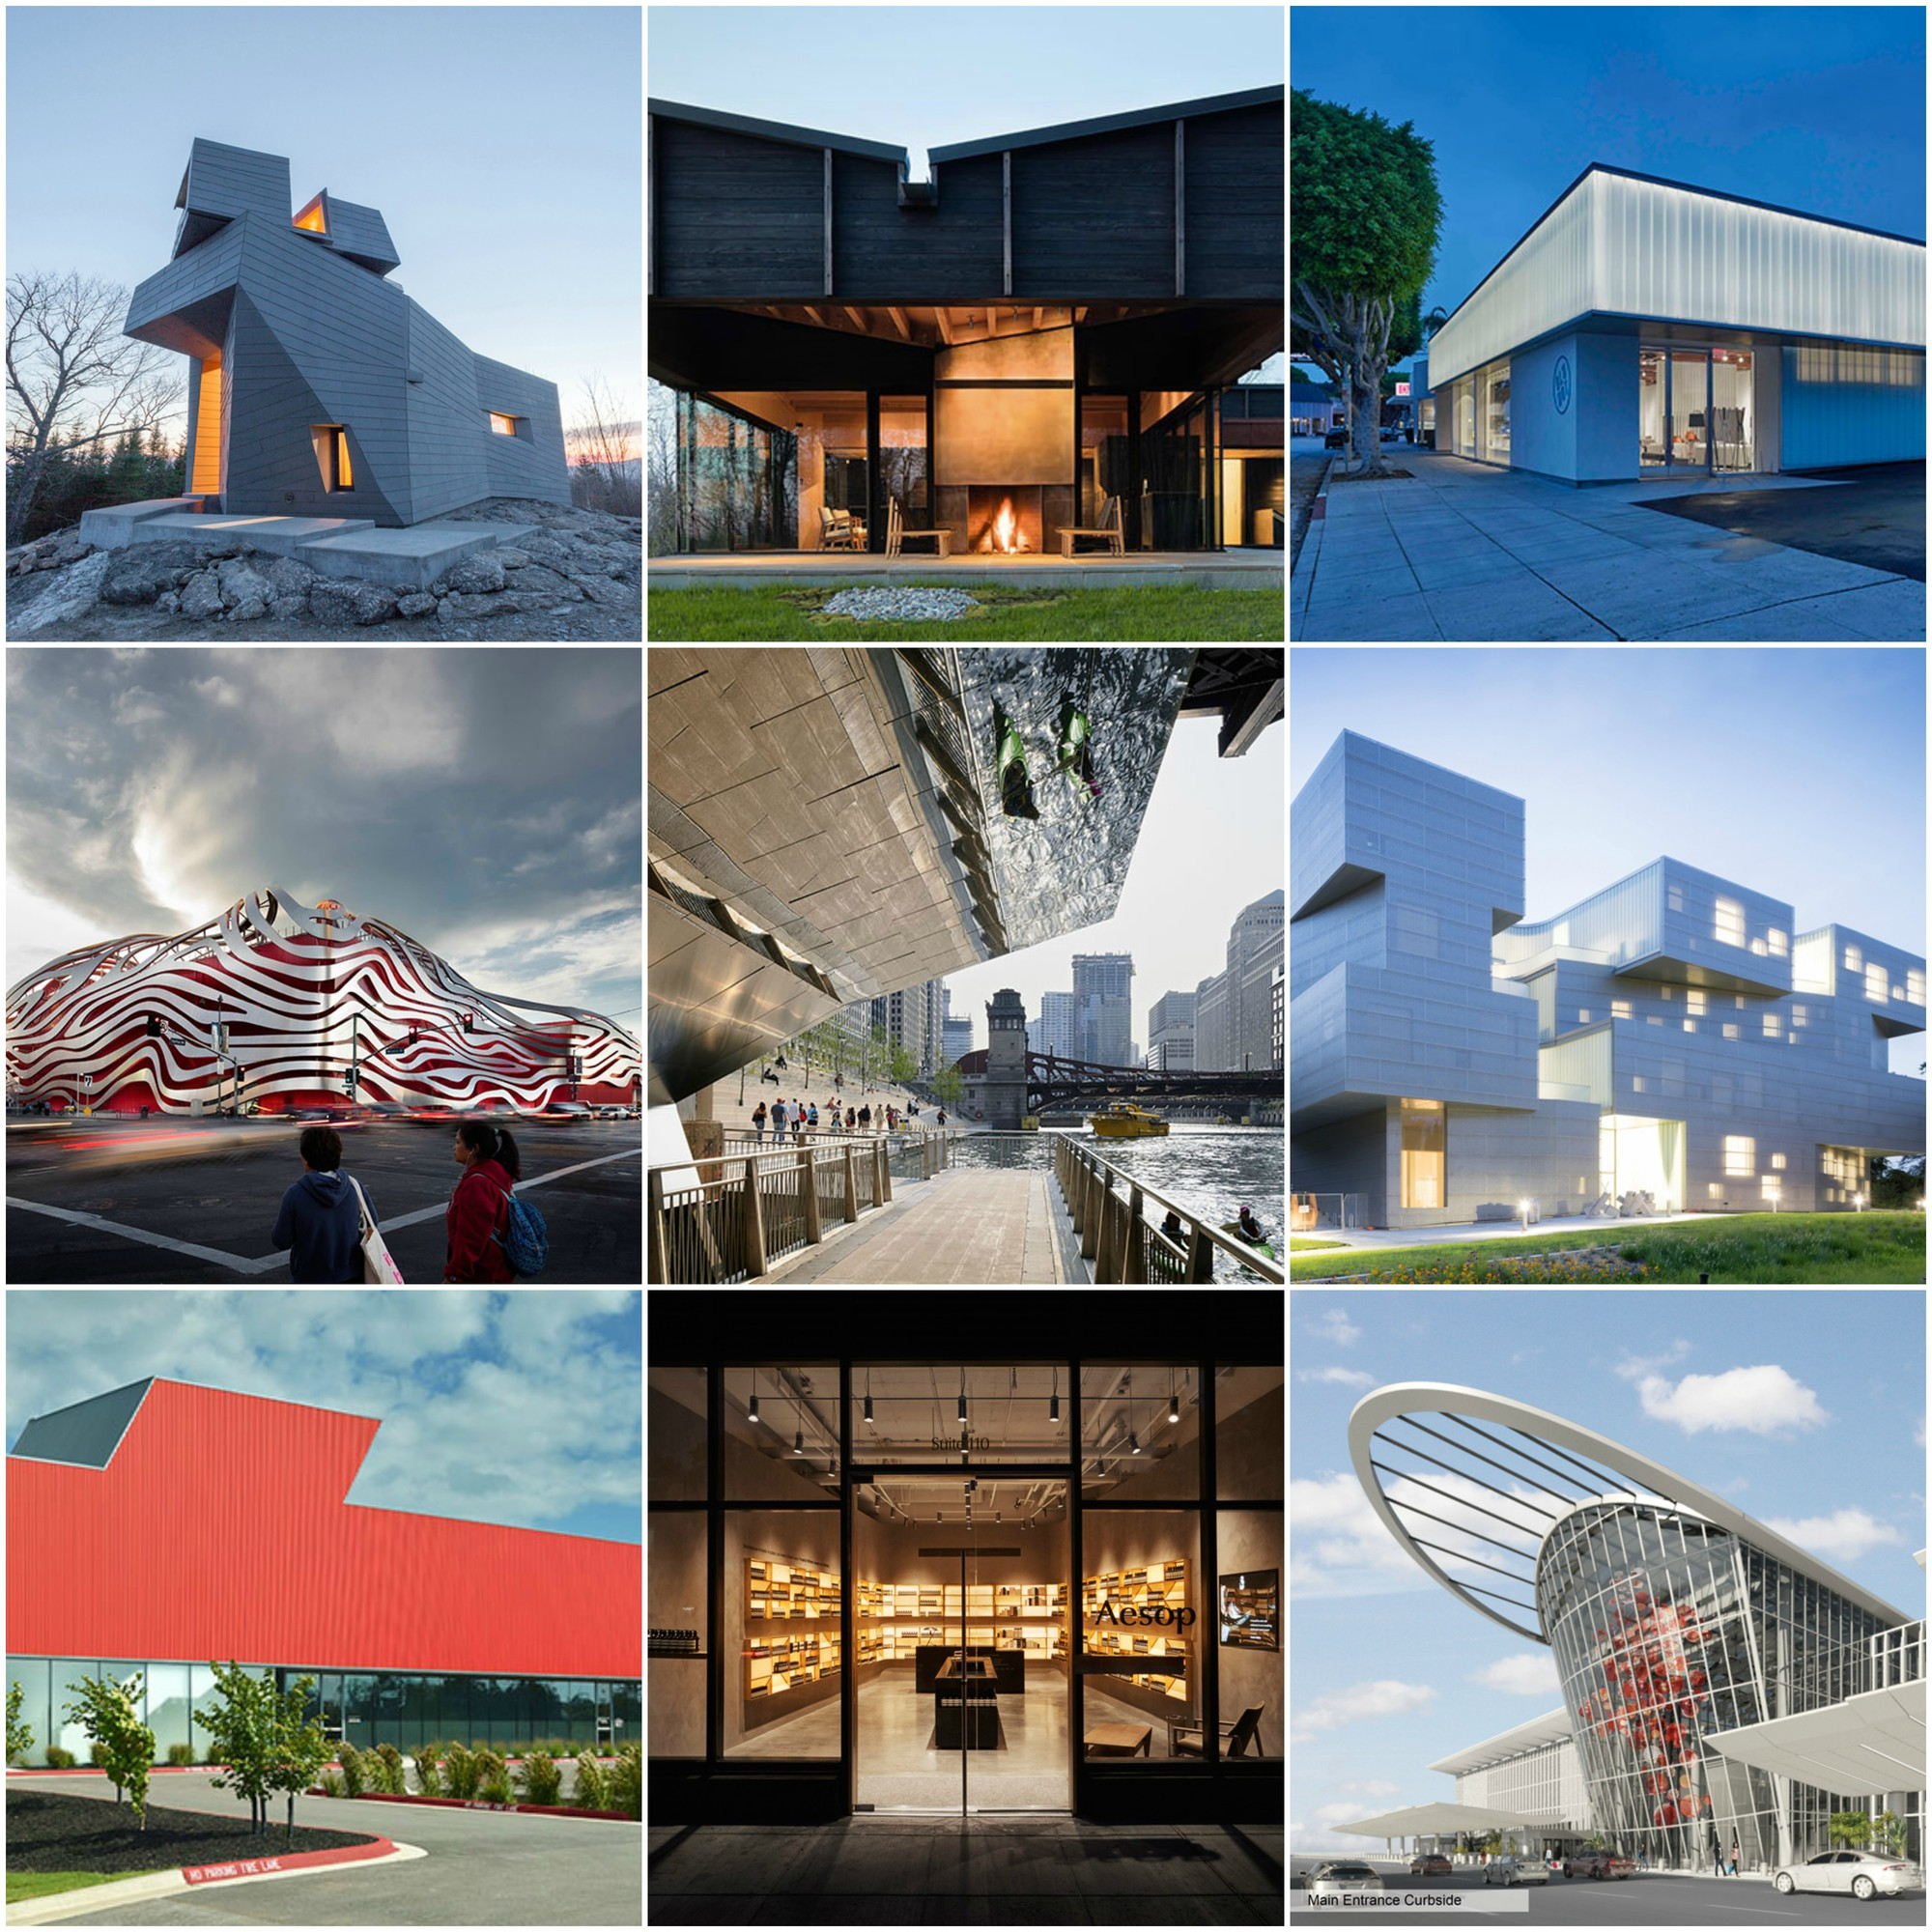 2017 american architecture award winners announced archdaily for Award winning architects